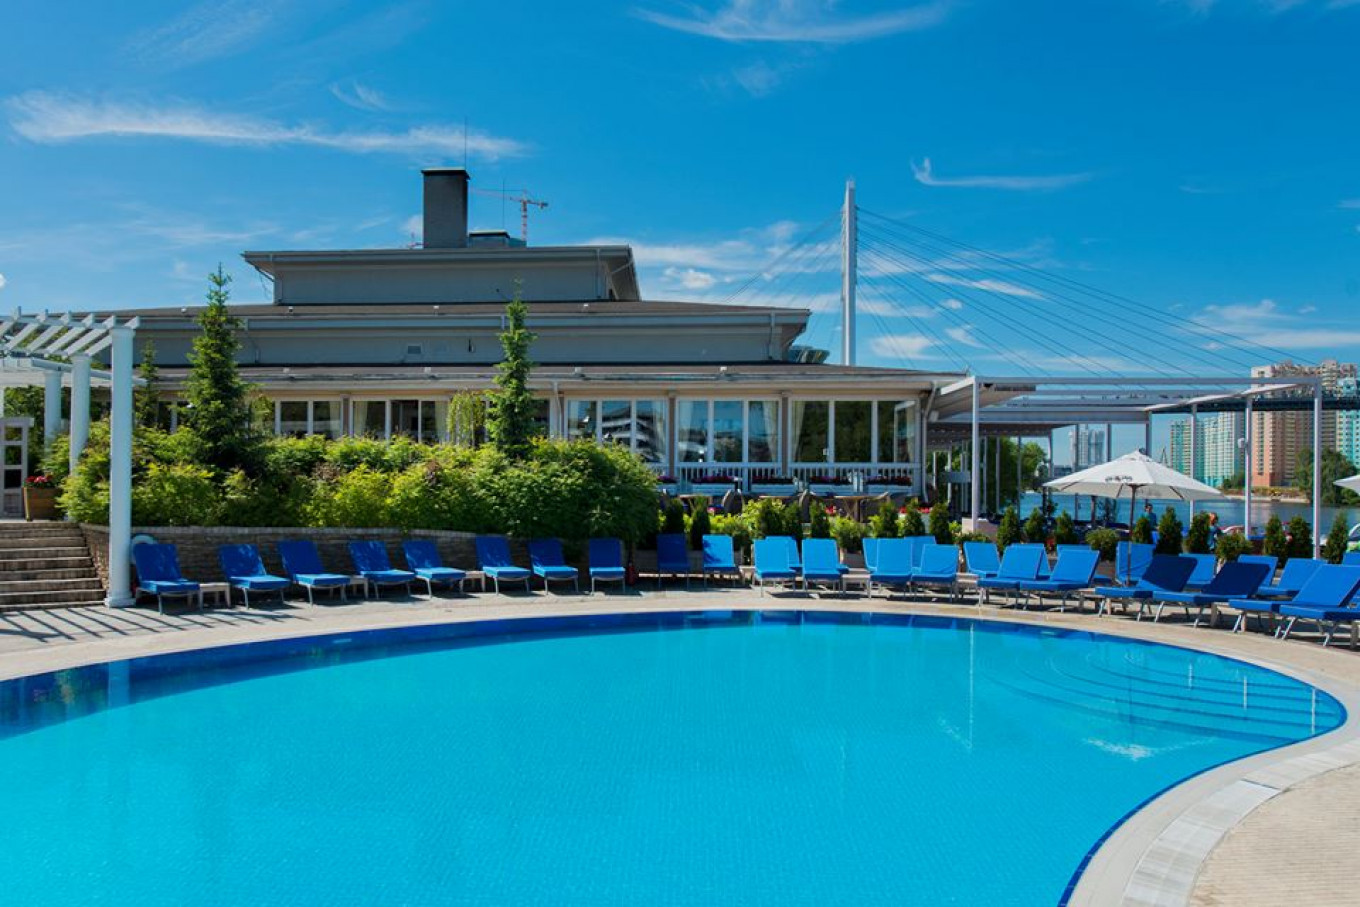 Country-club style luxury pool and cafe. Courtesy of Shore House Beach